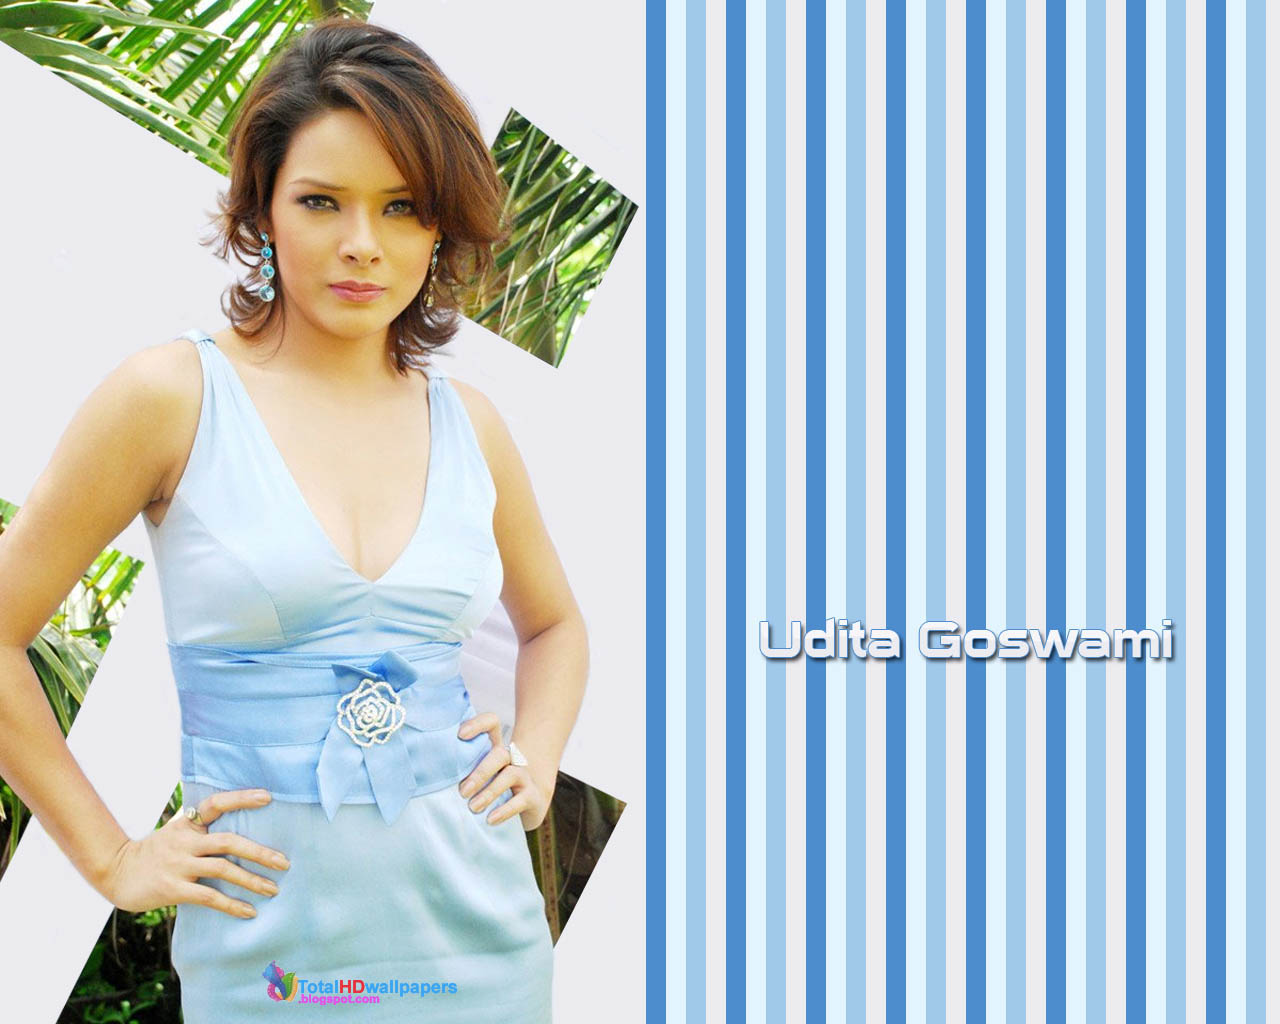 birth place assam india star sign virgo udita goswami height 5 7 eye colour green schoool days d a v public school college days dehradun